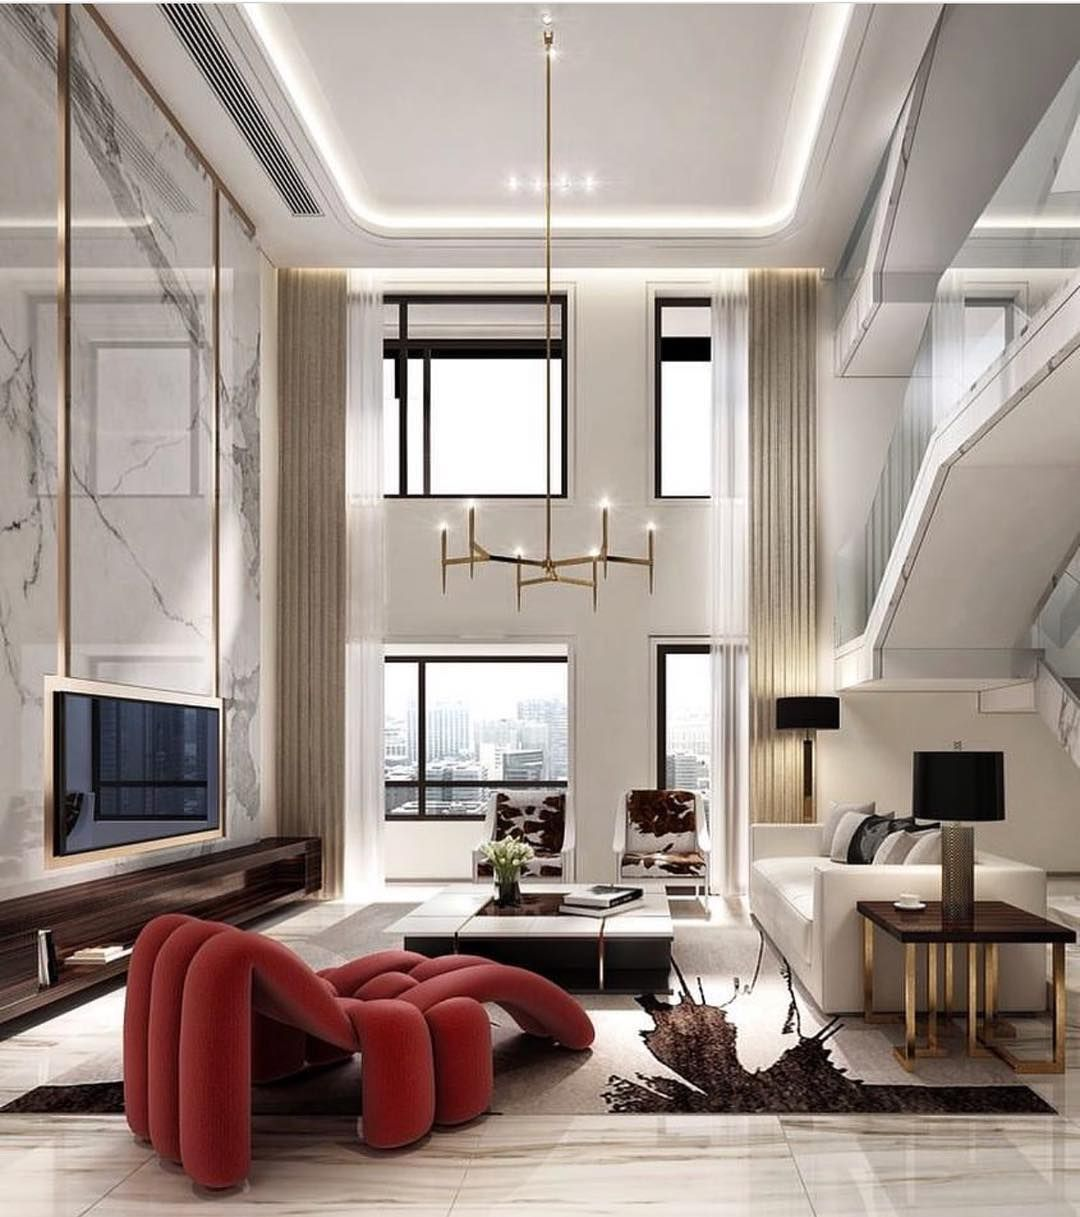 51 Modern Living Room Design From Talented Architects: 15.9k Likes, 404 Comments